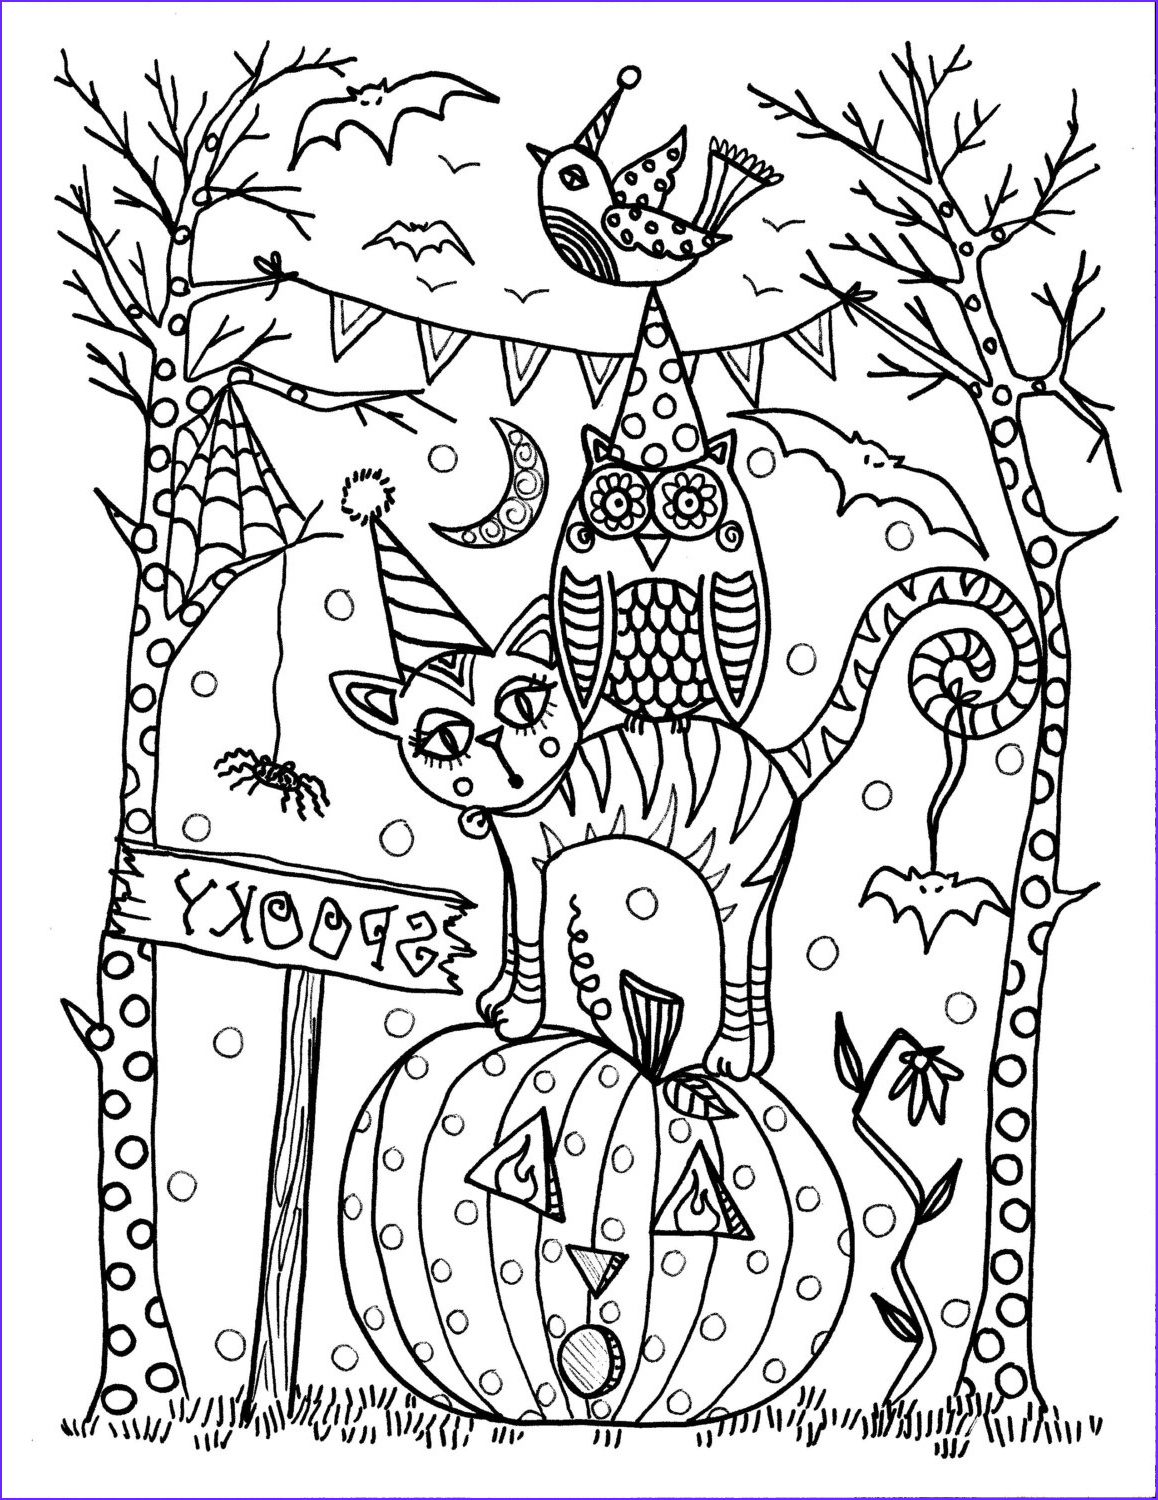 Free Printable Halloween Coloring Pages for Kids Beautiful Photos 5 Pages Instant Download Halloween Coloring Pages 5